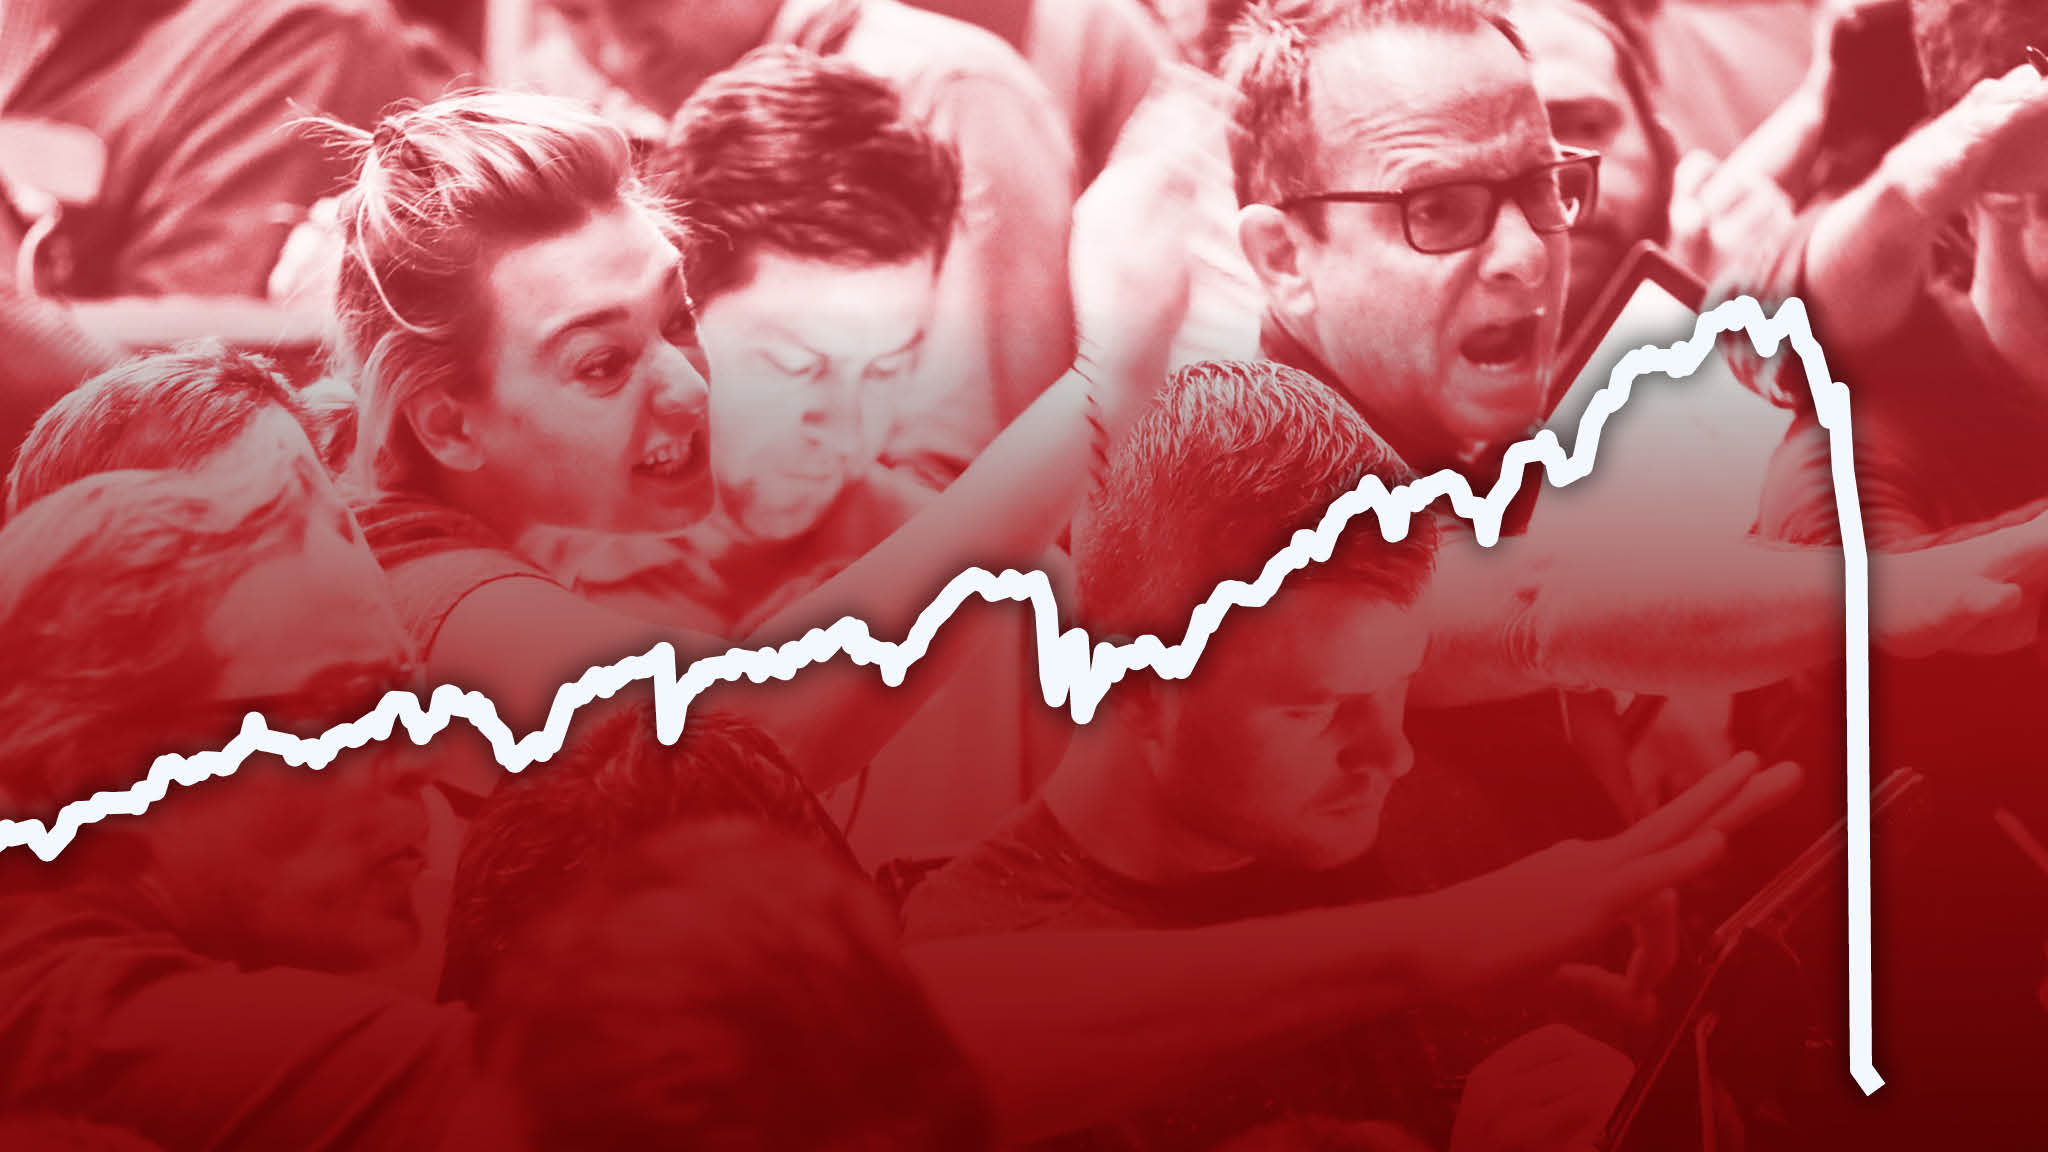 The unstoppable rise of trading market volatility